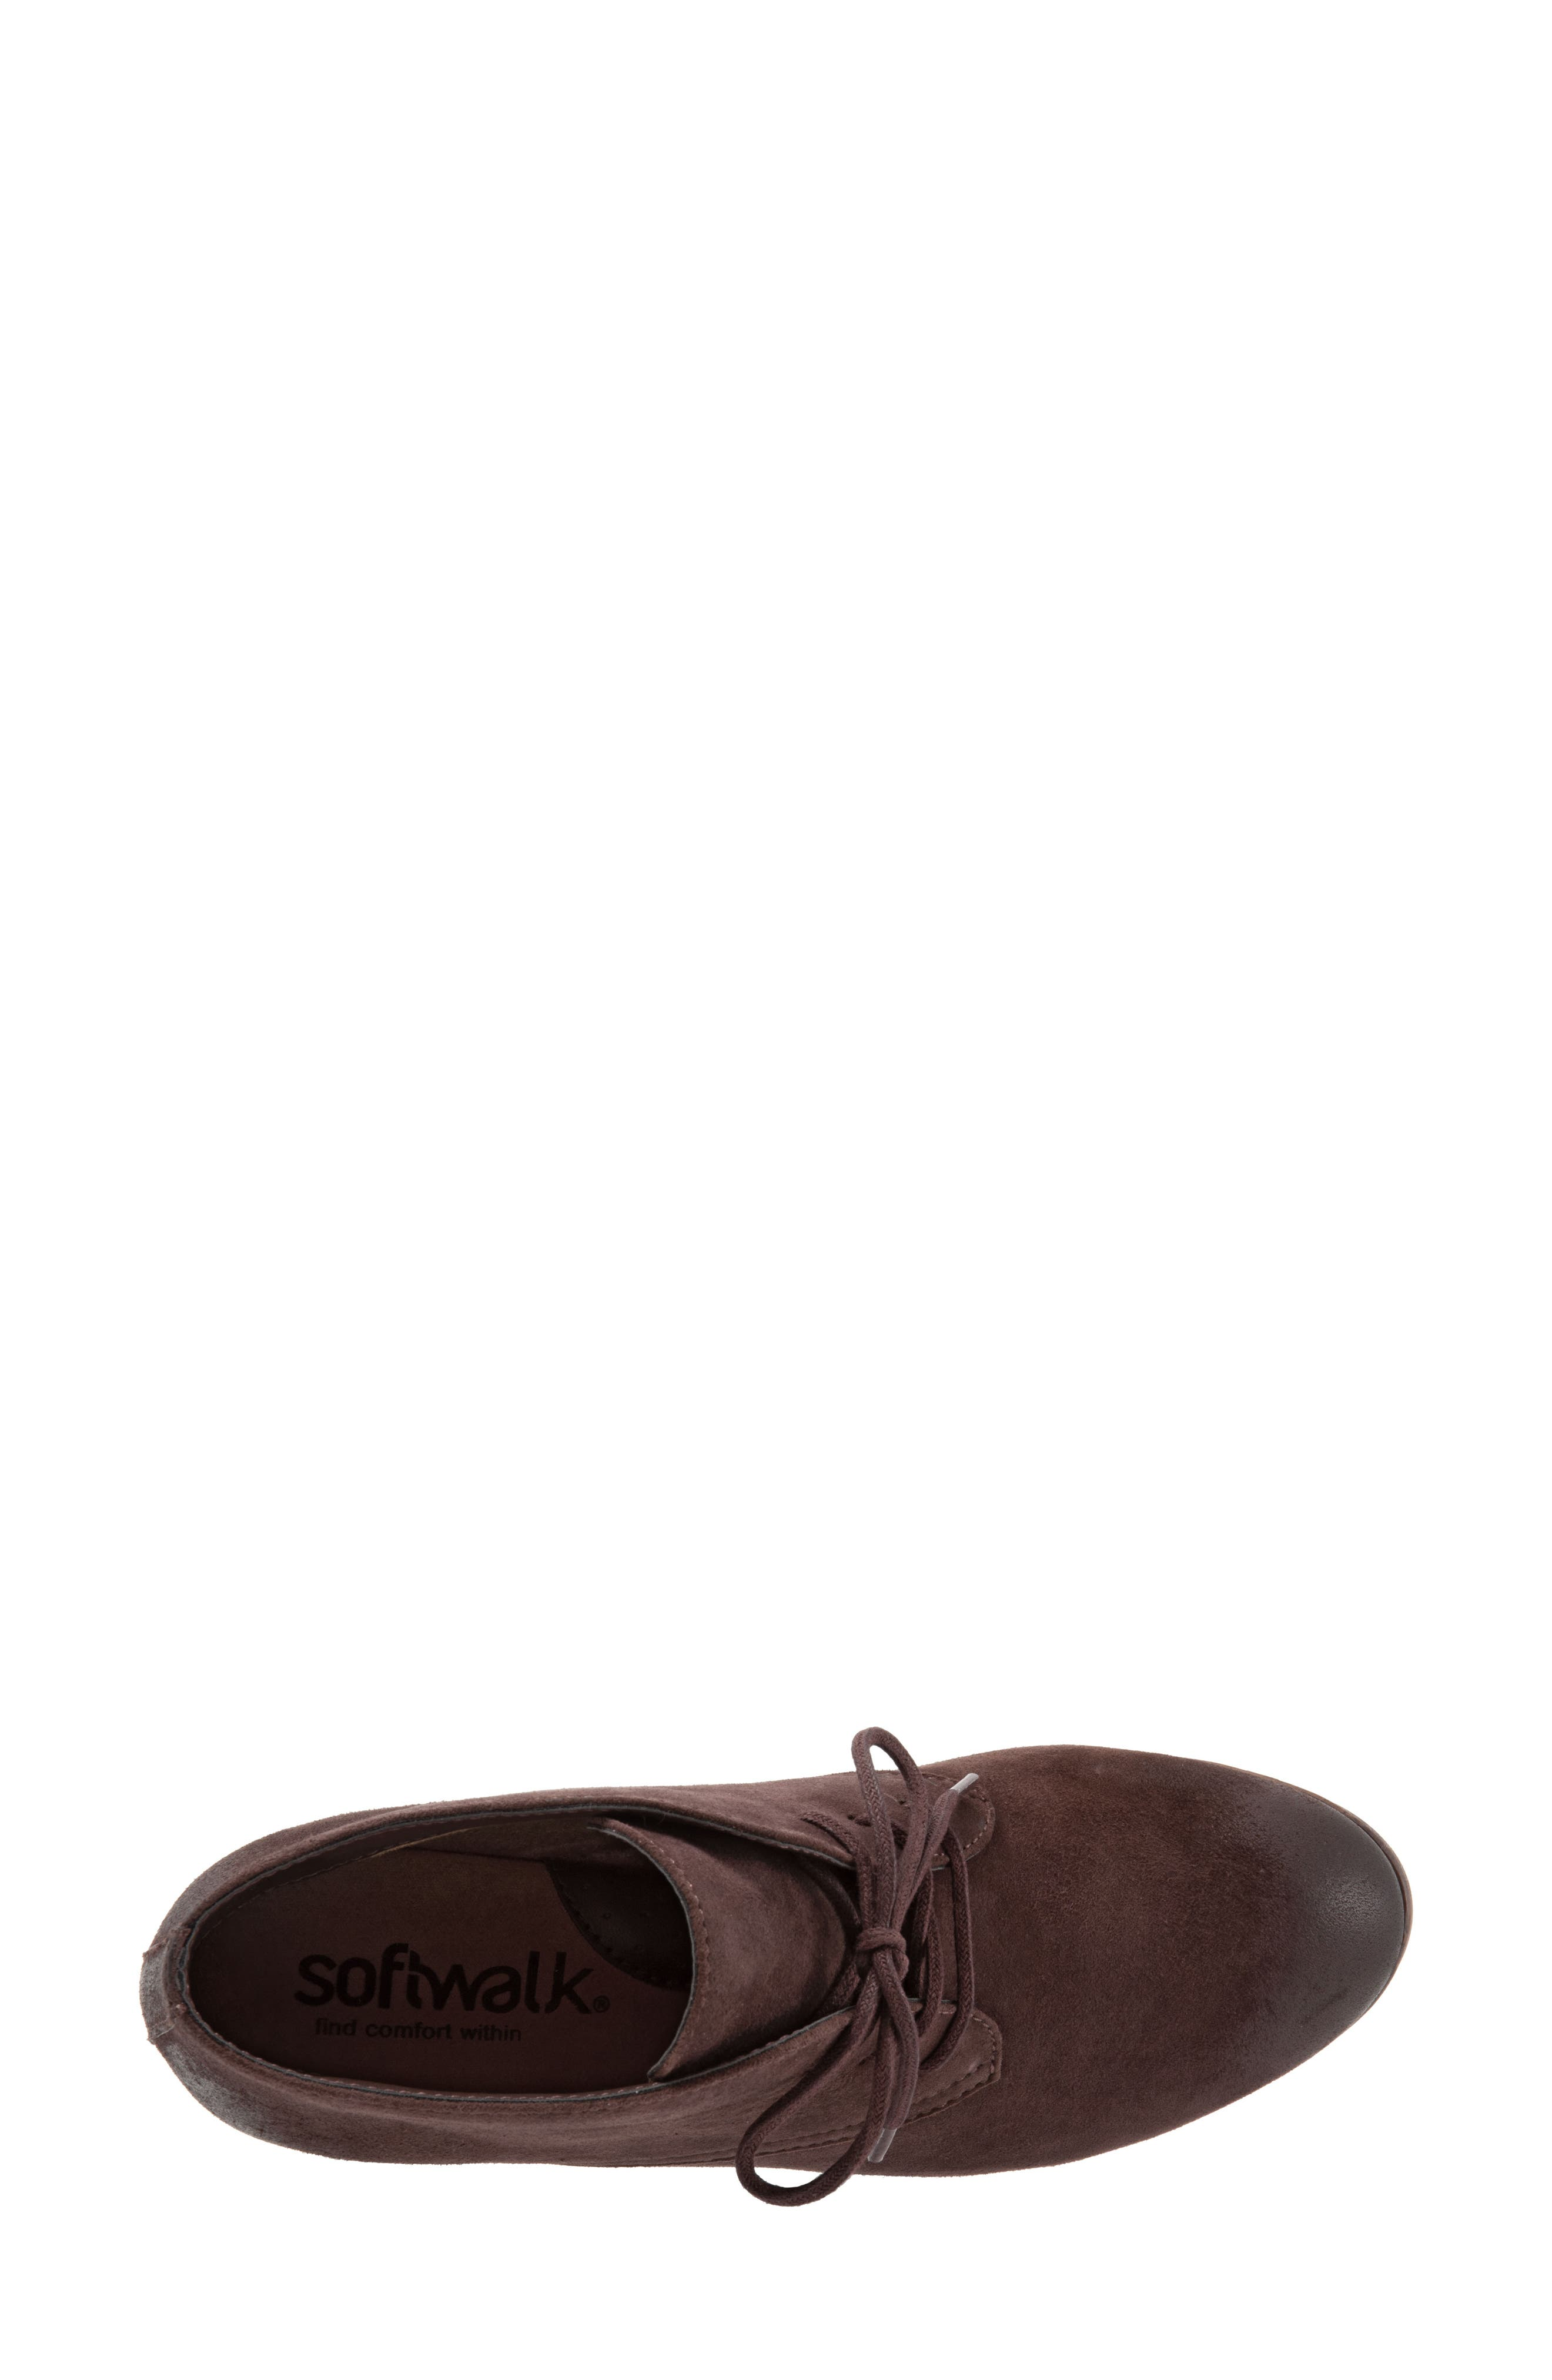 'Ramsey' Chukka Boot,                             Alternate thumbnail 5, color,                             DARK BROWN LEATHER